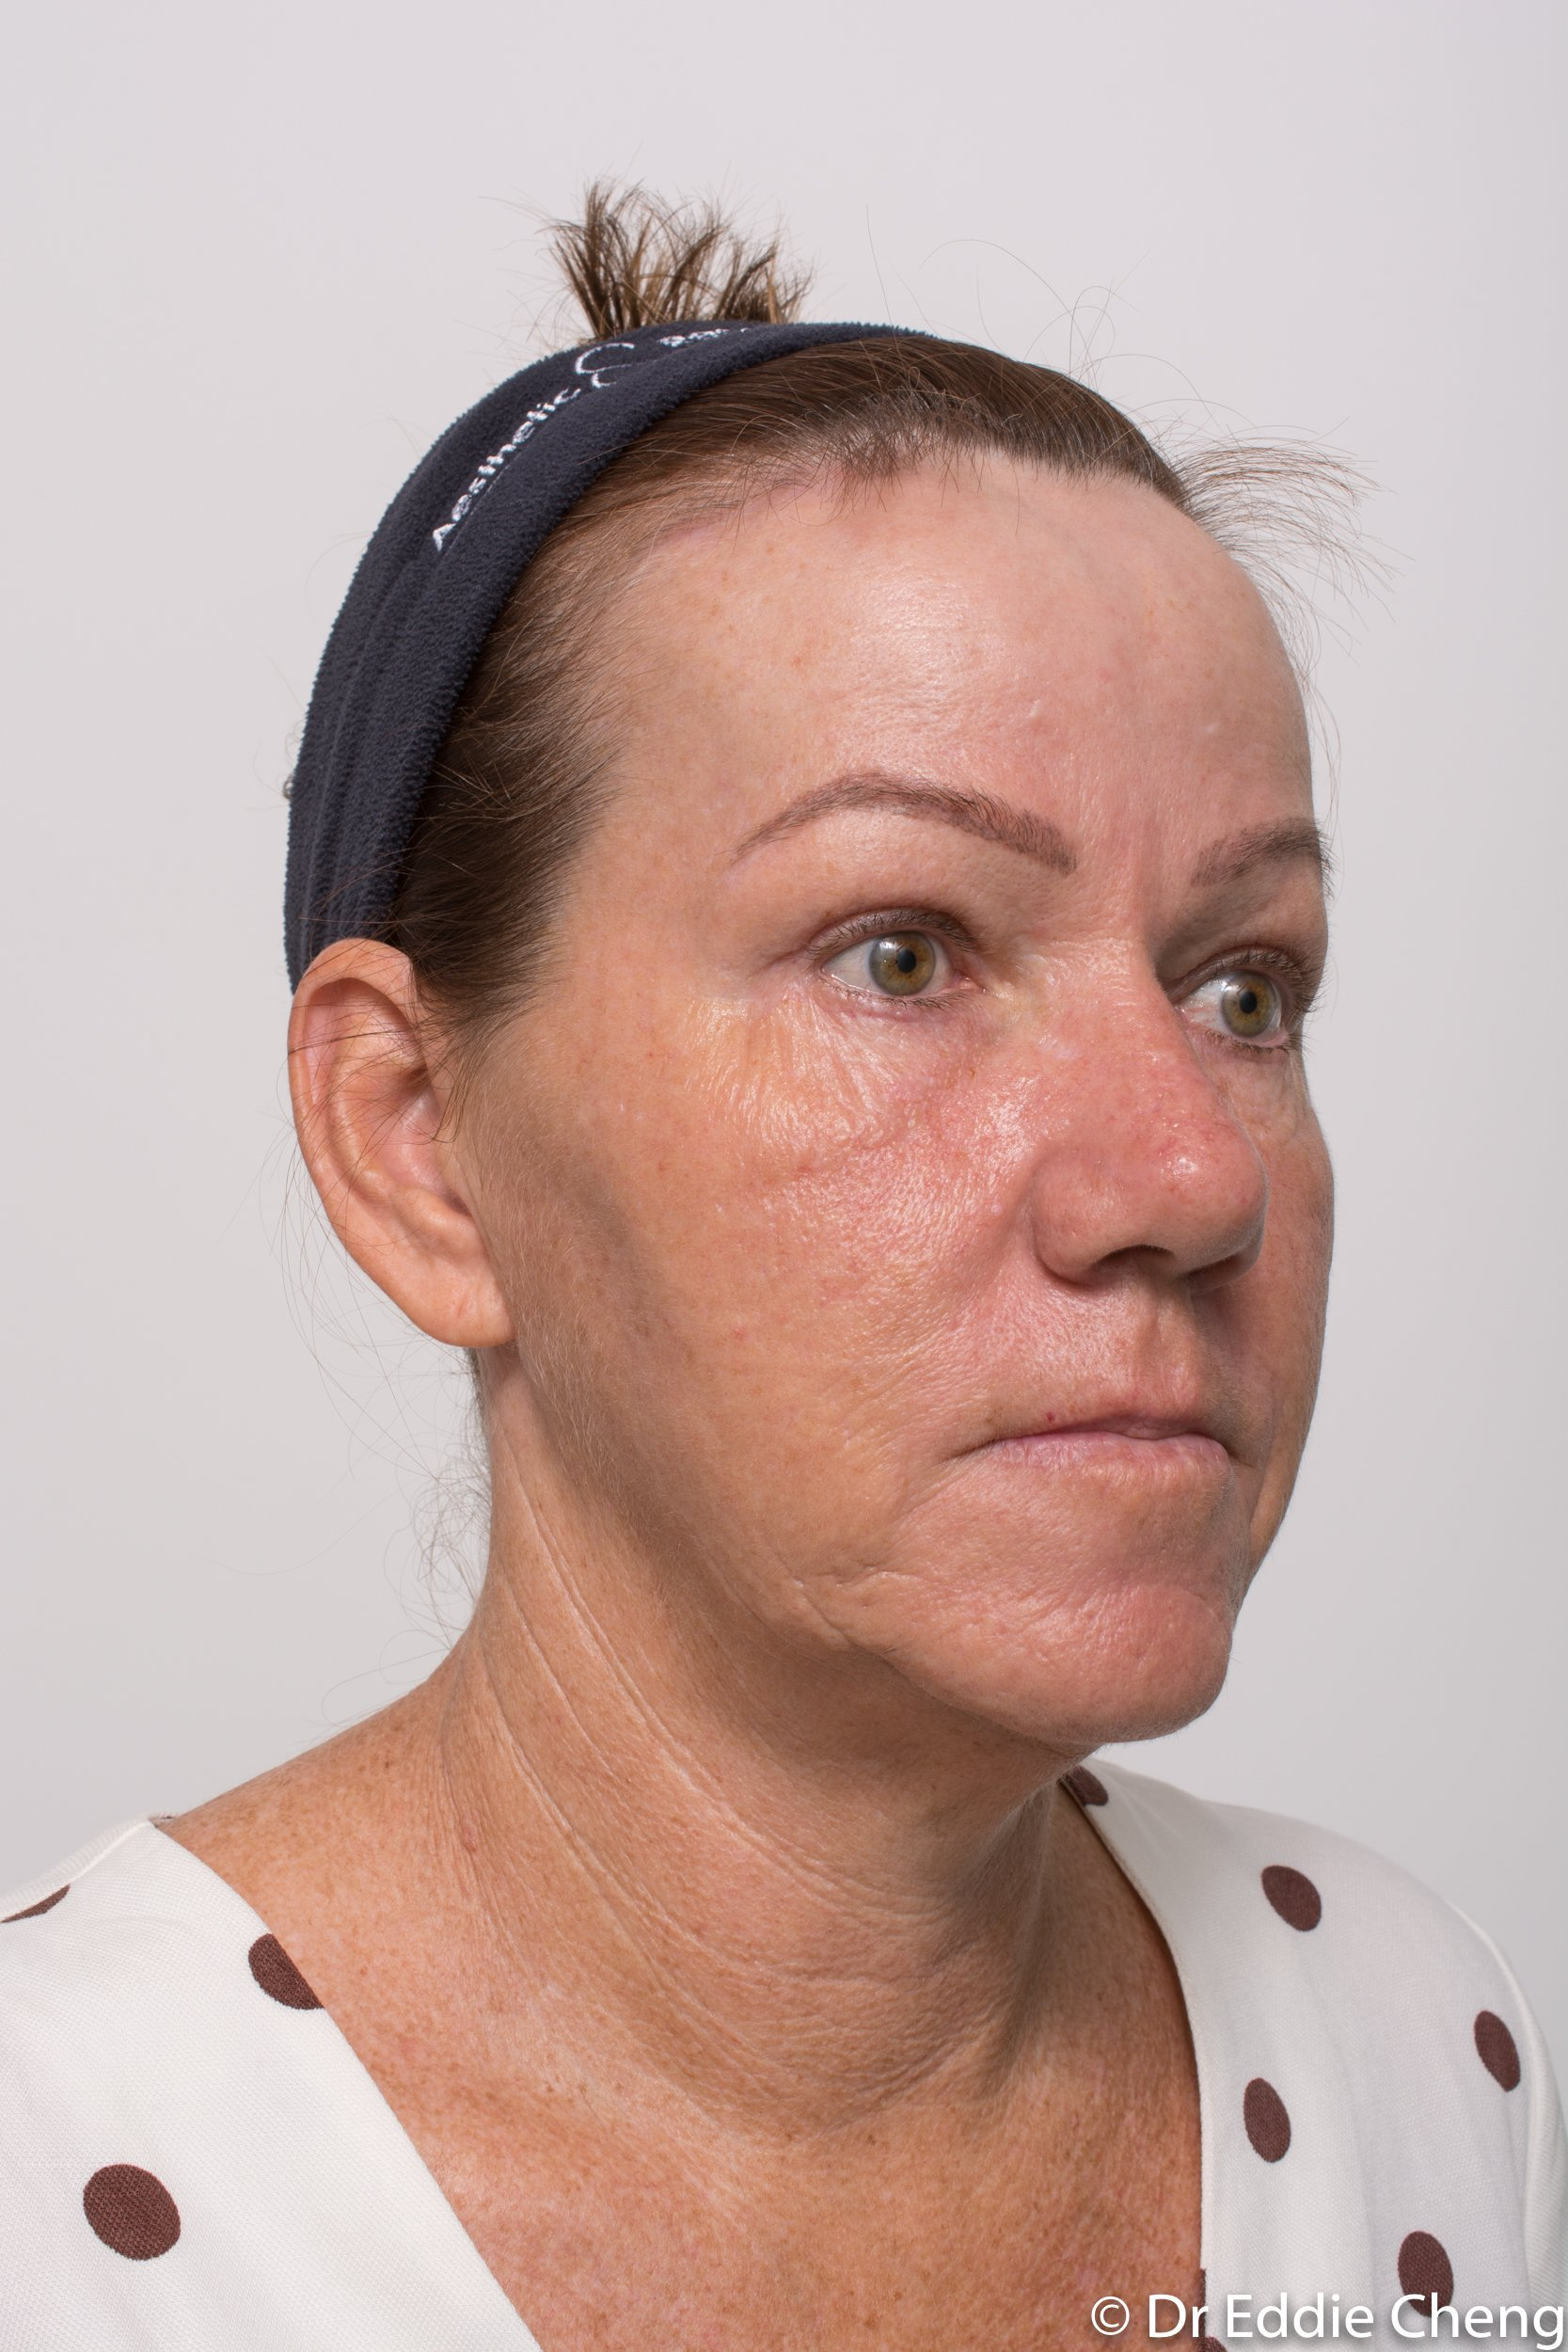 Brow lift dr eddie cheng blepharoplasty pre and post operative brisbane surgeon -9-2